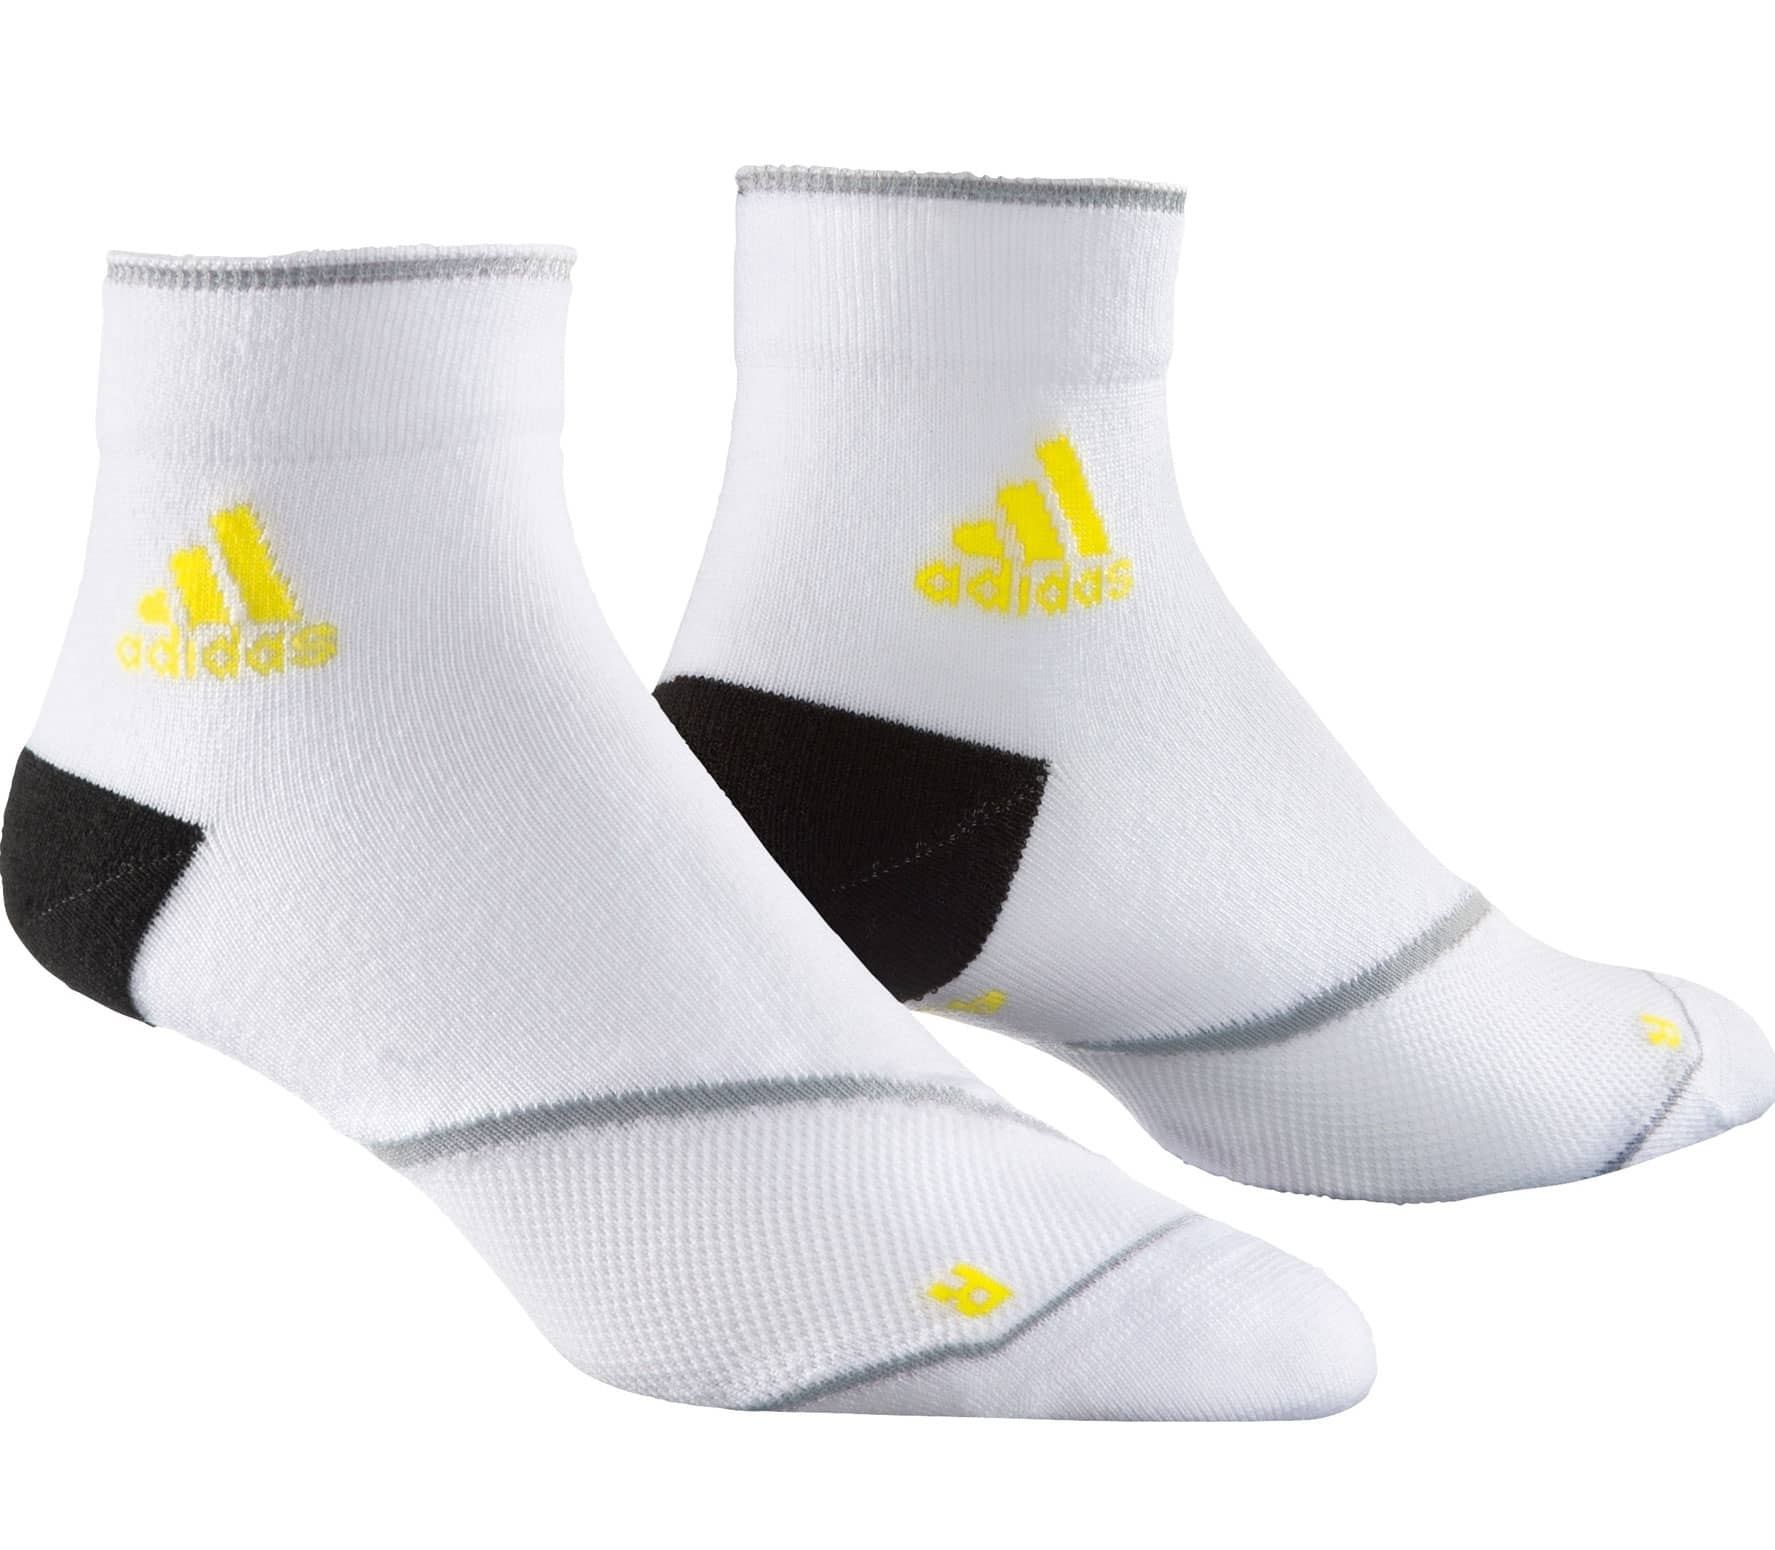 Cheap Price 2-pair Of Adidas Adizero Tc Ankle Sock Running Socks Cushion Running Sport Sock Fitness, Running & Yoga